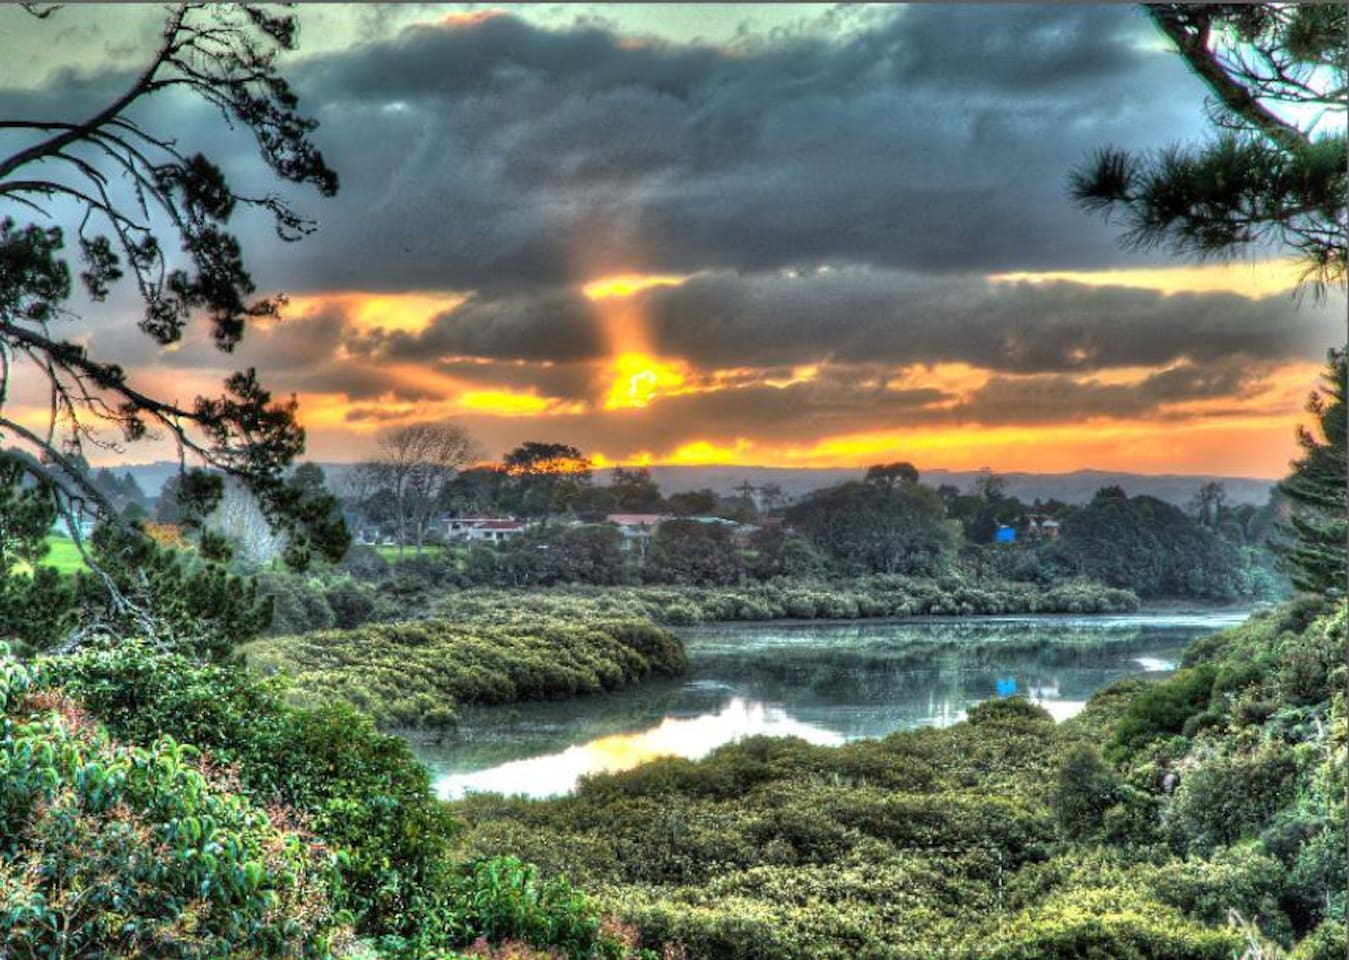 Amazing views and sunsets over the estuary that leads to the Manukau Harbour.